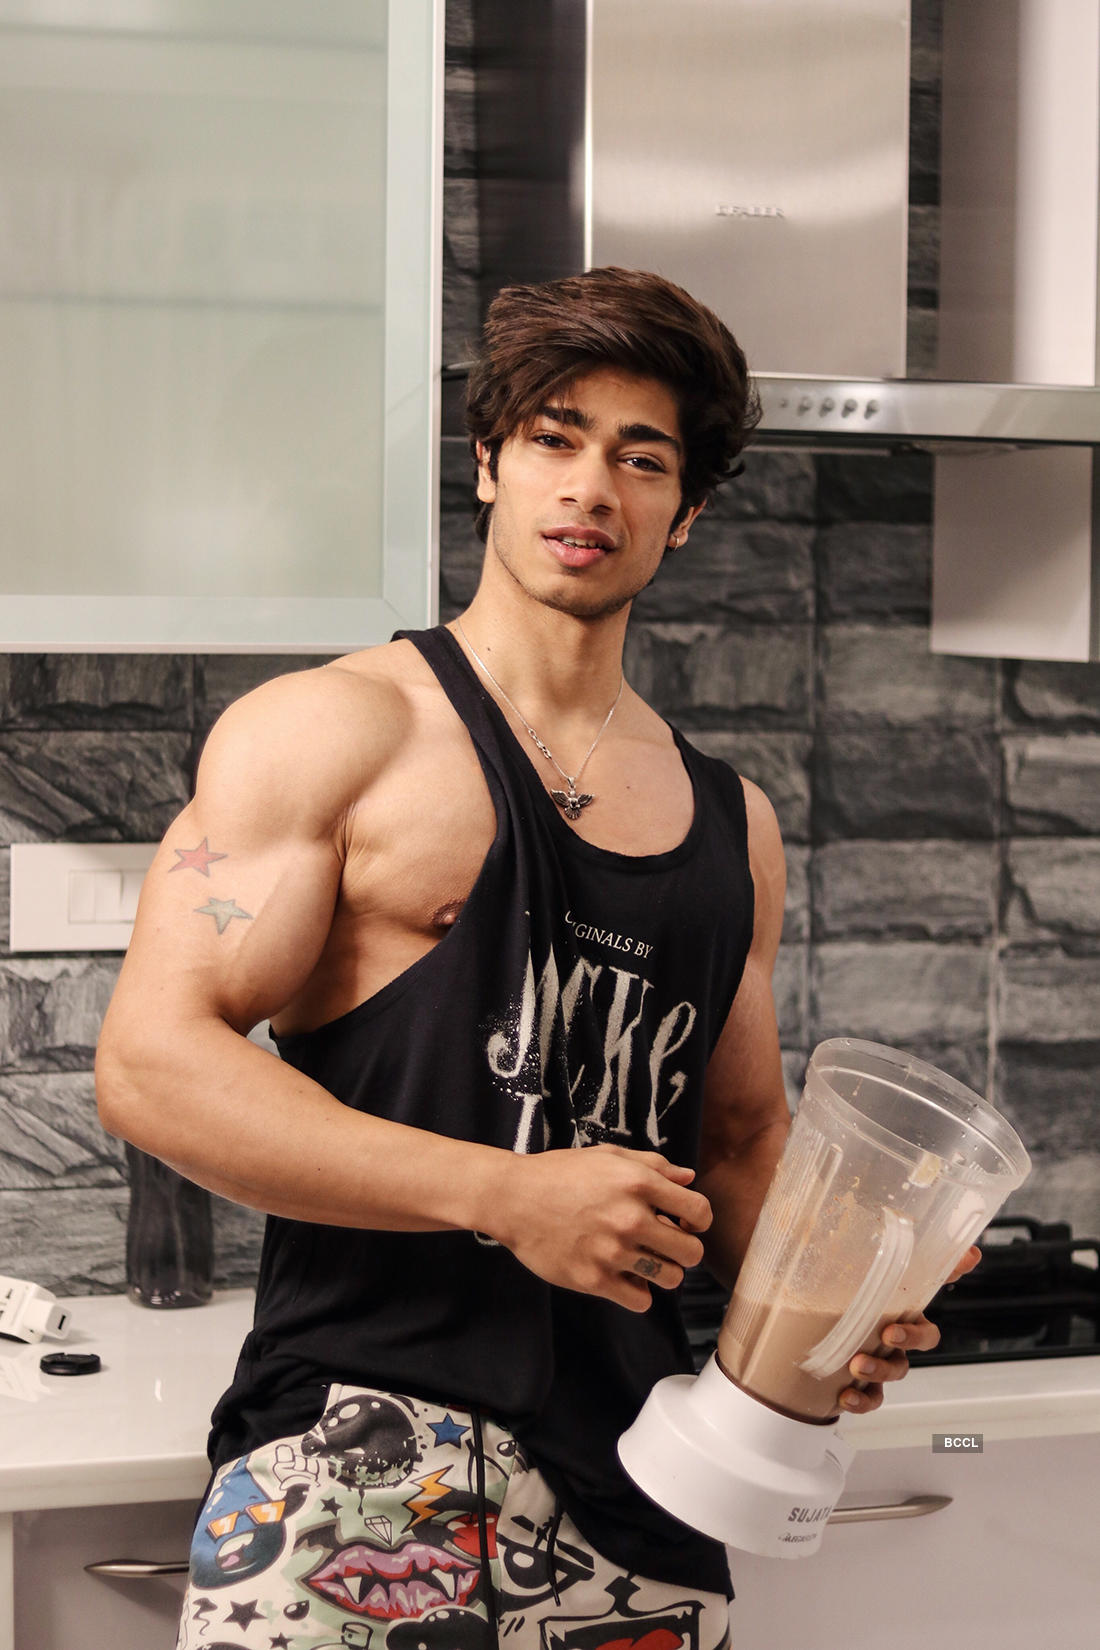 Fitness enthusiast Vasu Mittal opens up on use of steroids in bodybuilding...